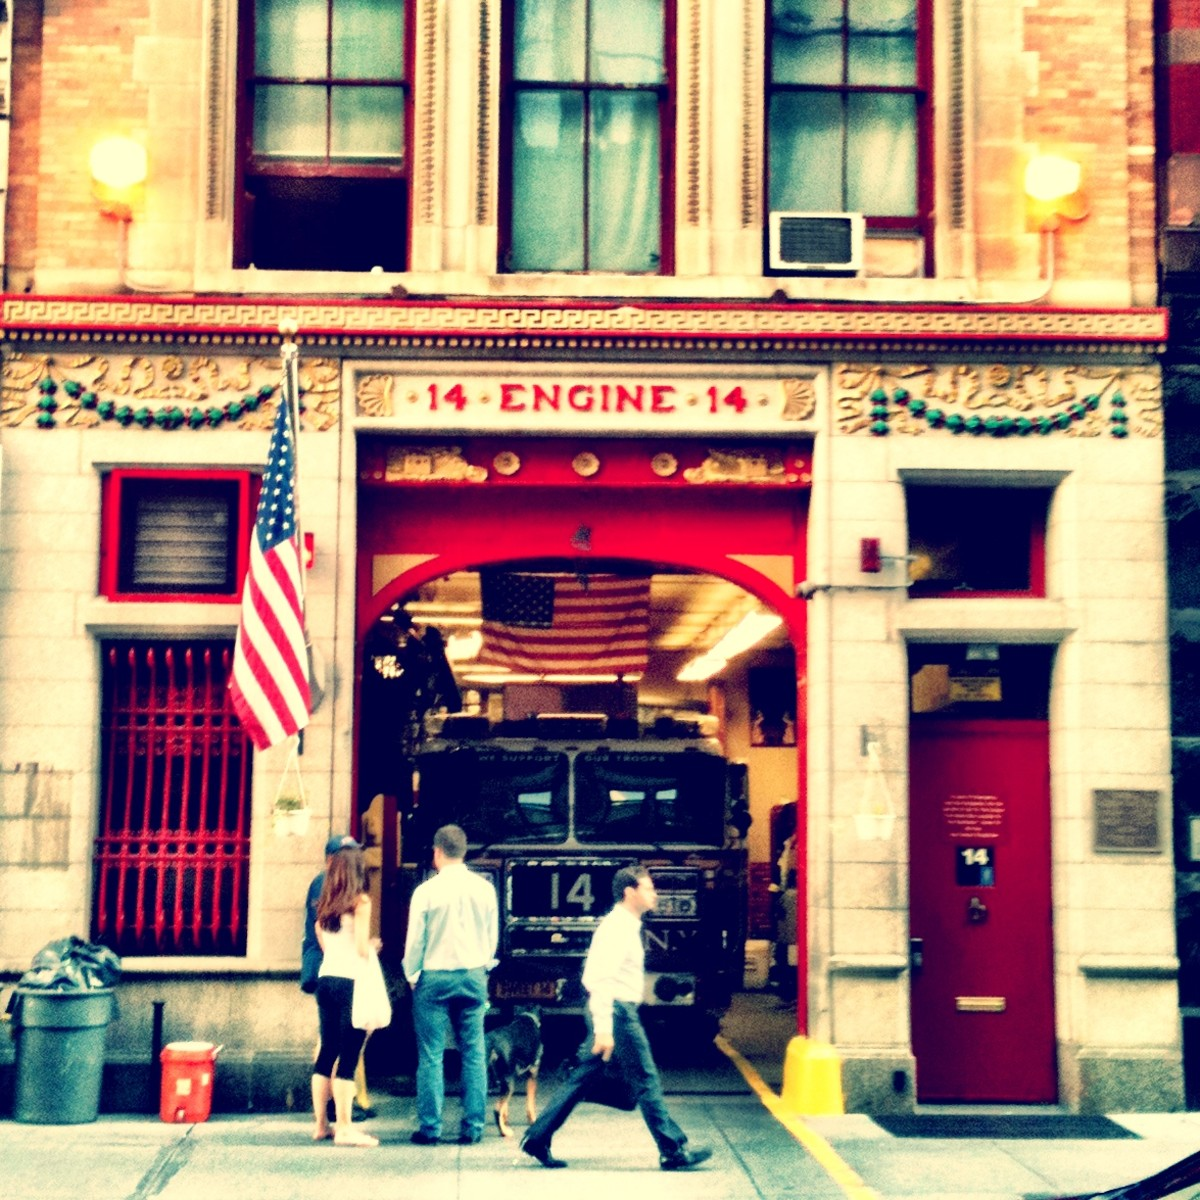 Fire House in NYC